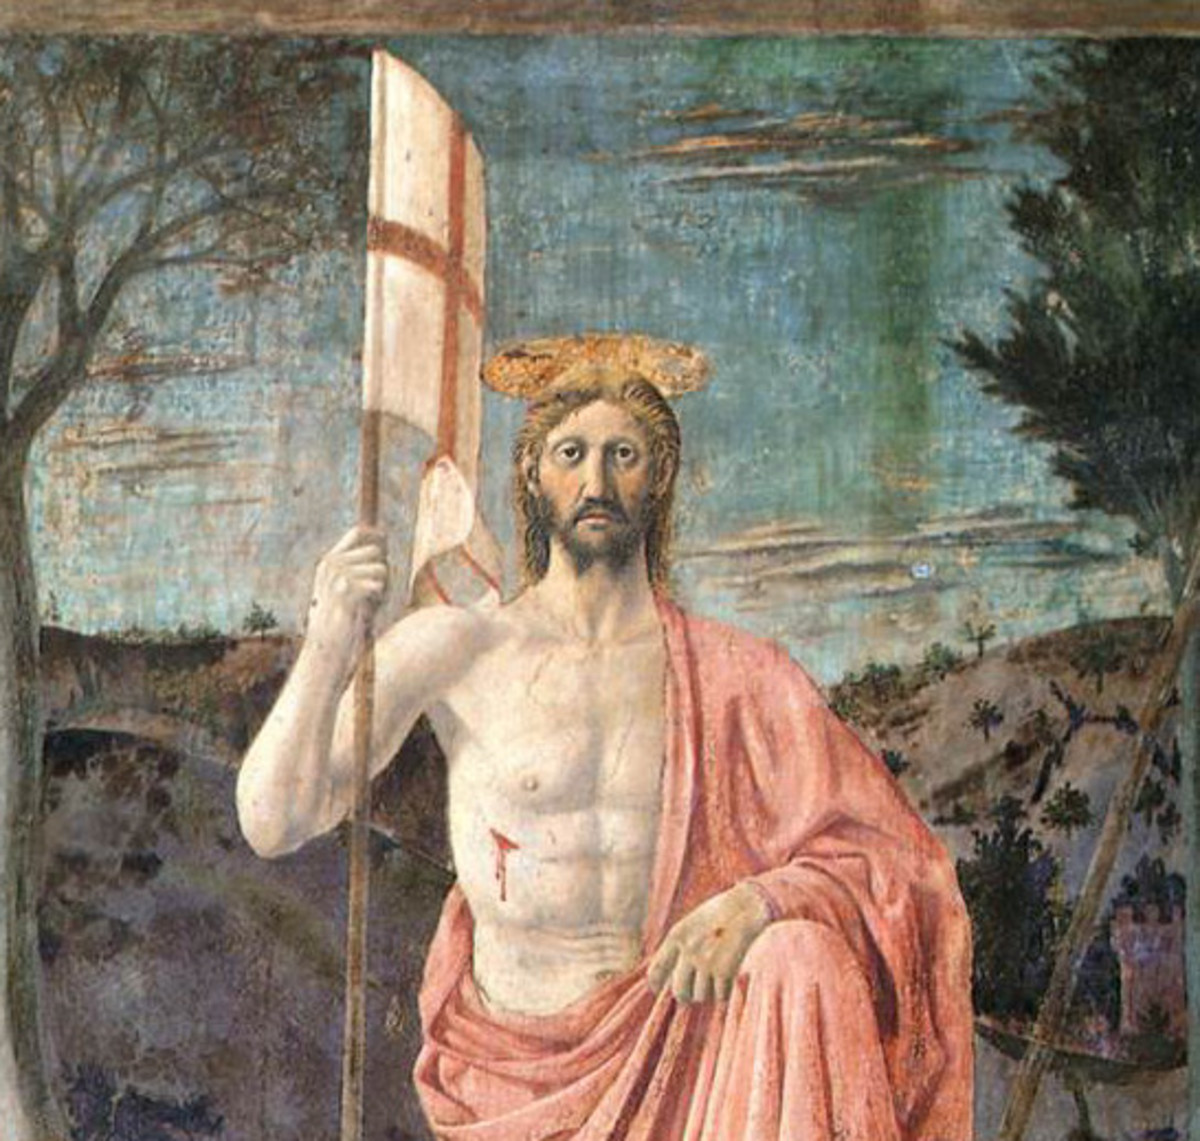 Piero della Francesca, Resurrection of Jesus Christ (1463) - Detail, Sansepolcro (AR) Museo Civico